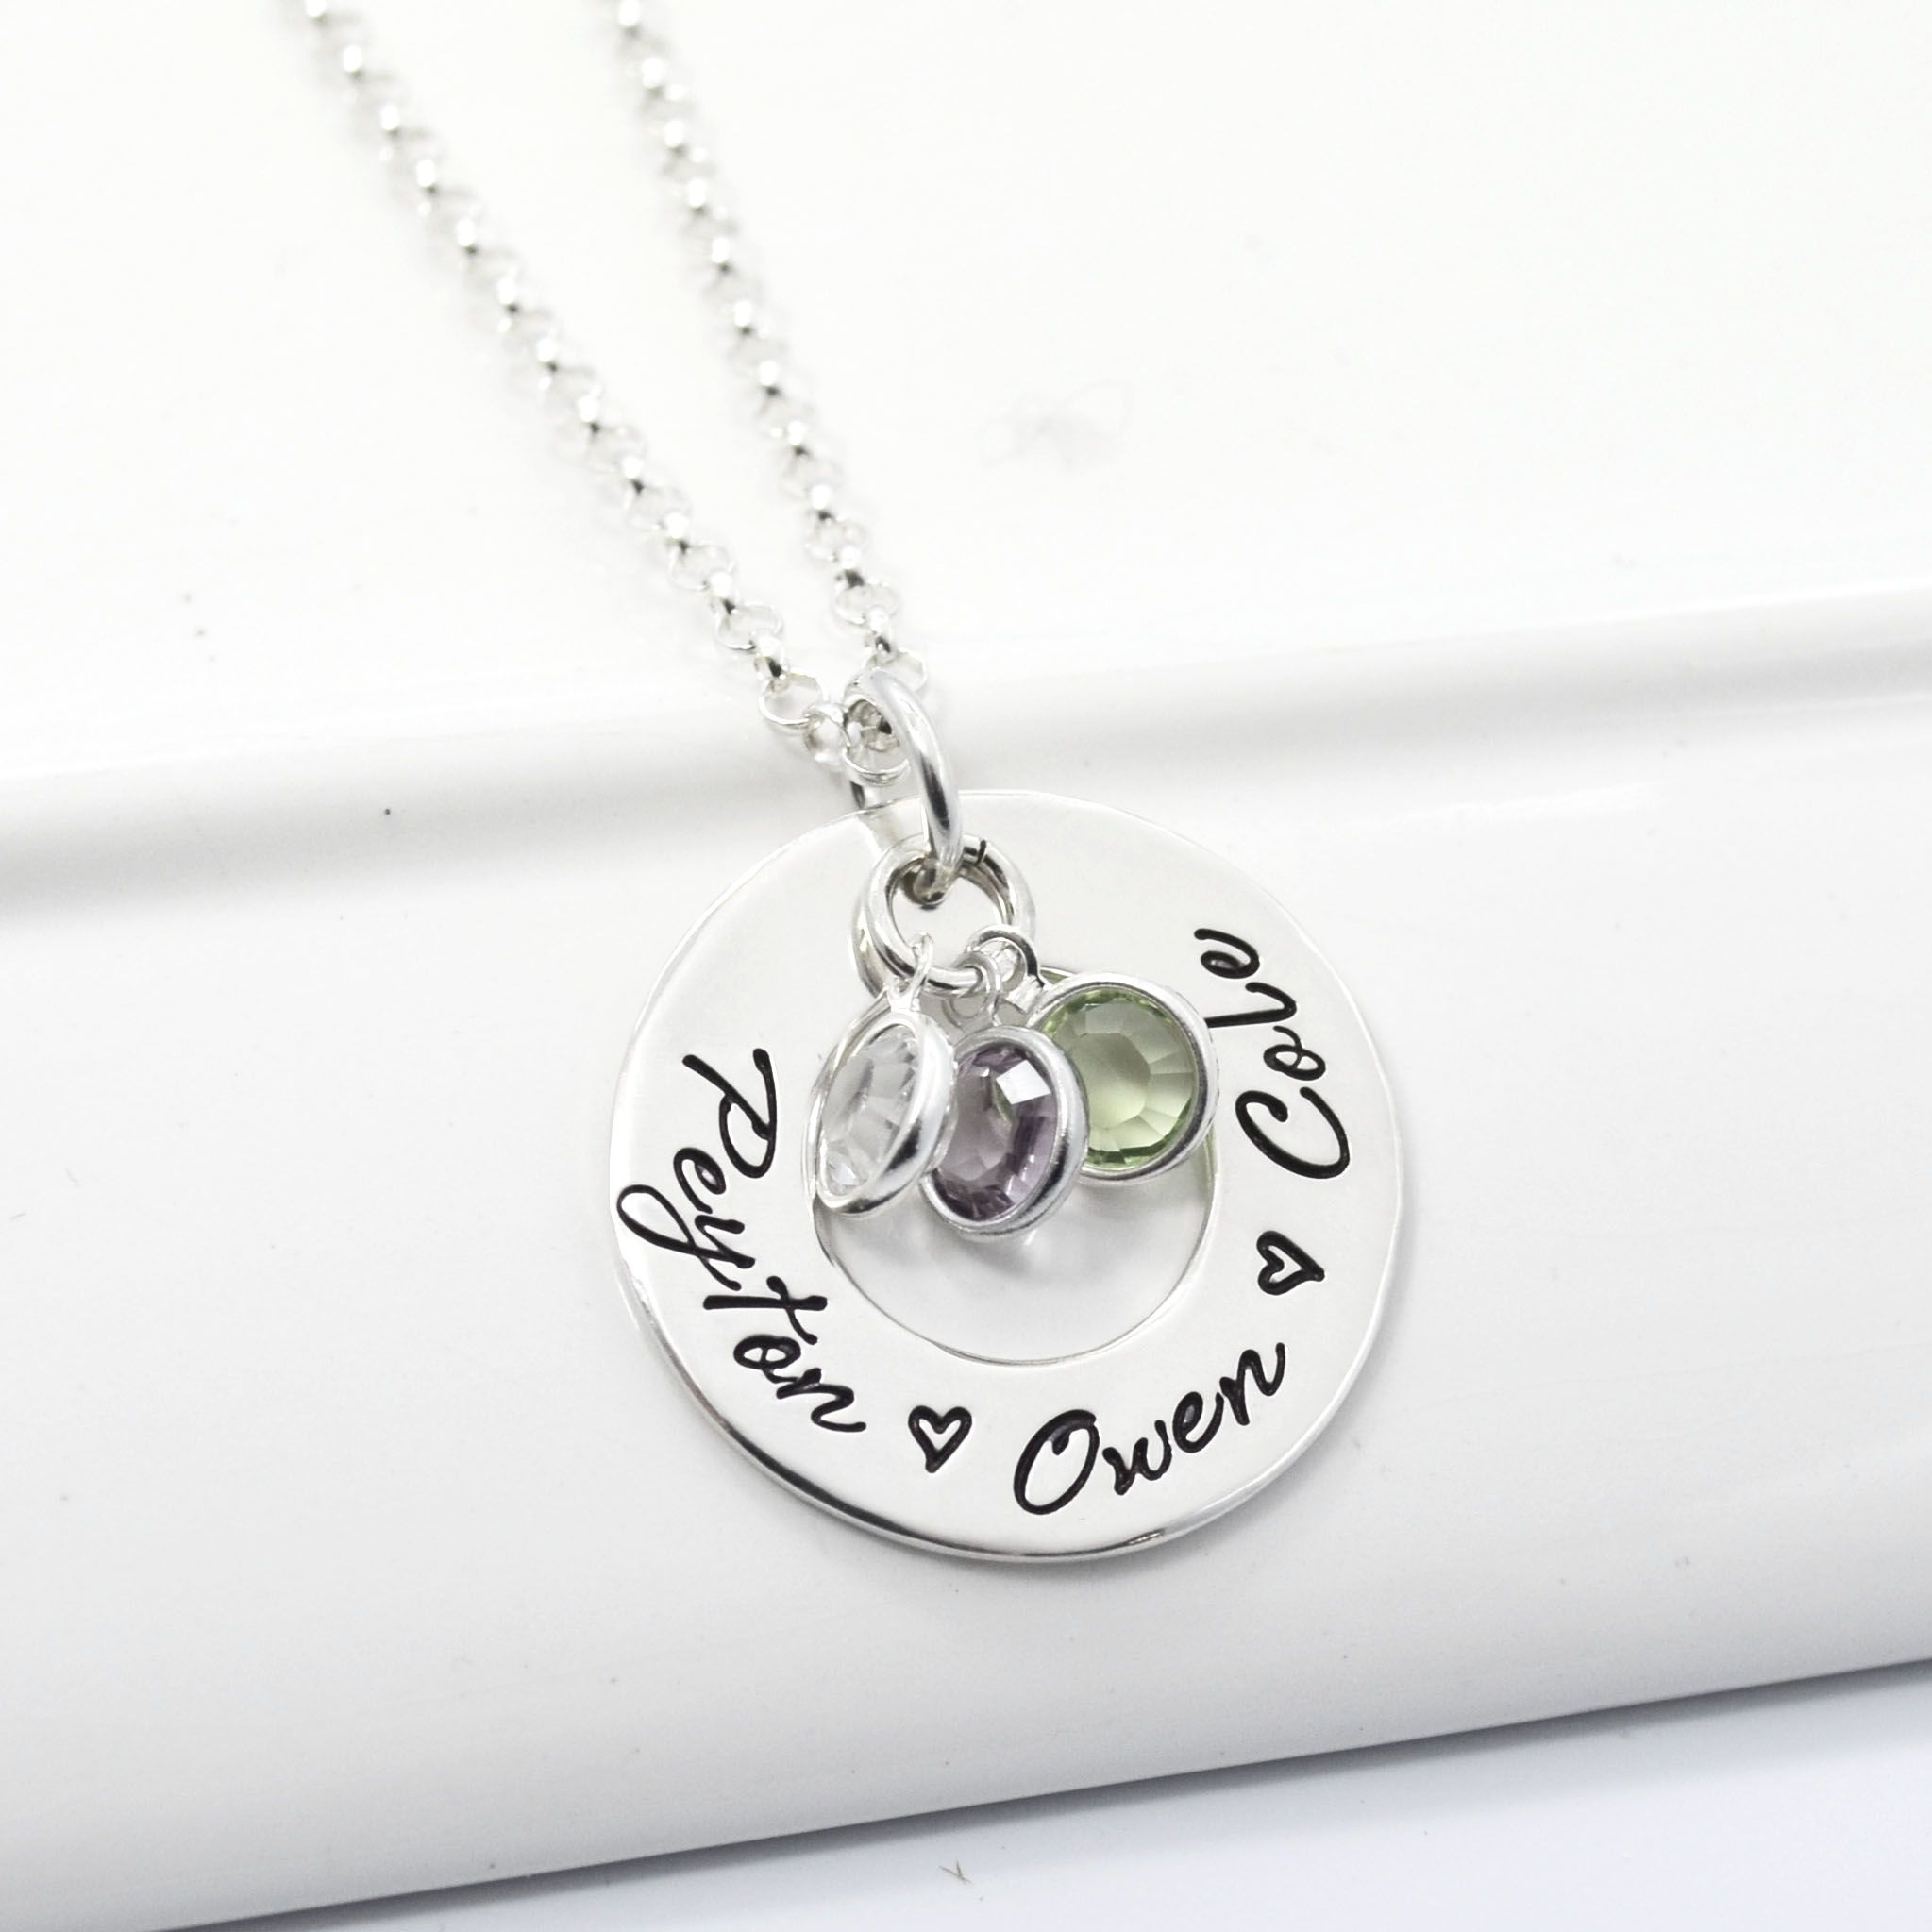 necklace gold childrens personalized ip girls over com silver sterling name walmart